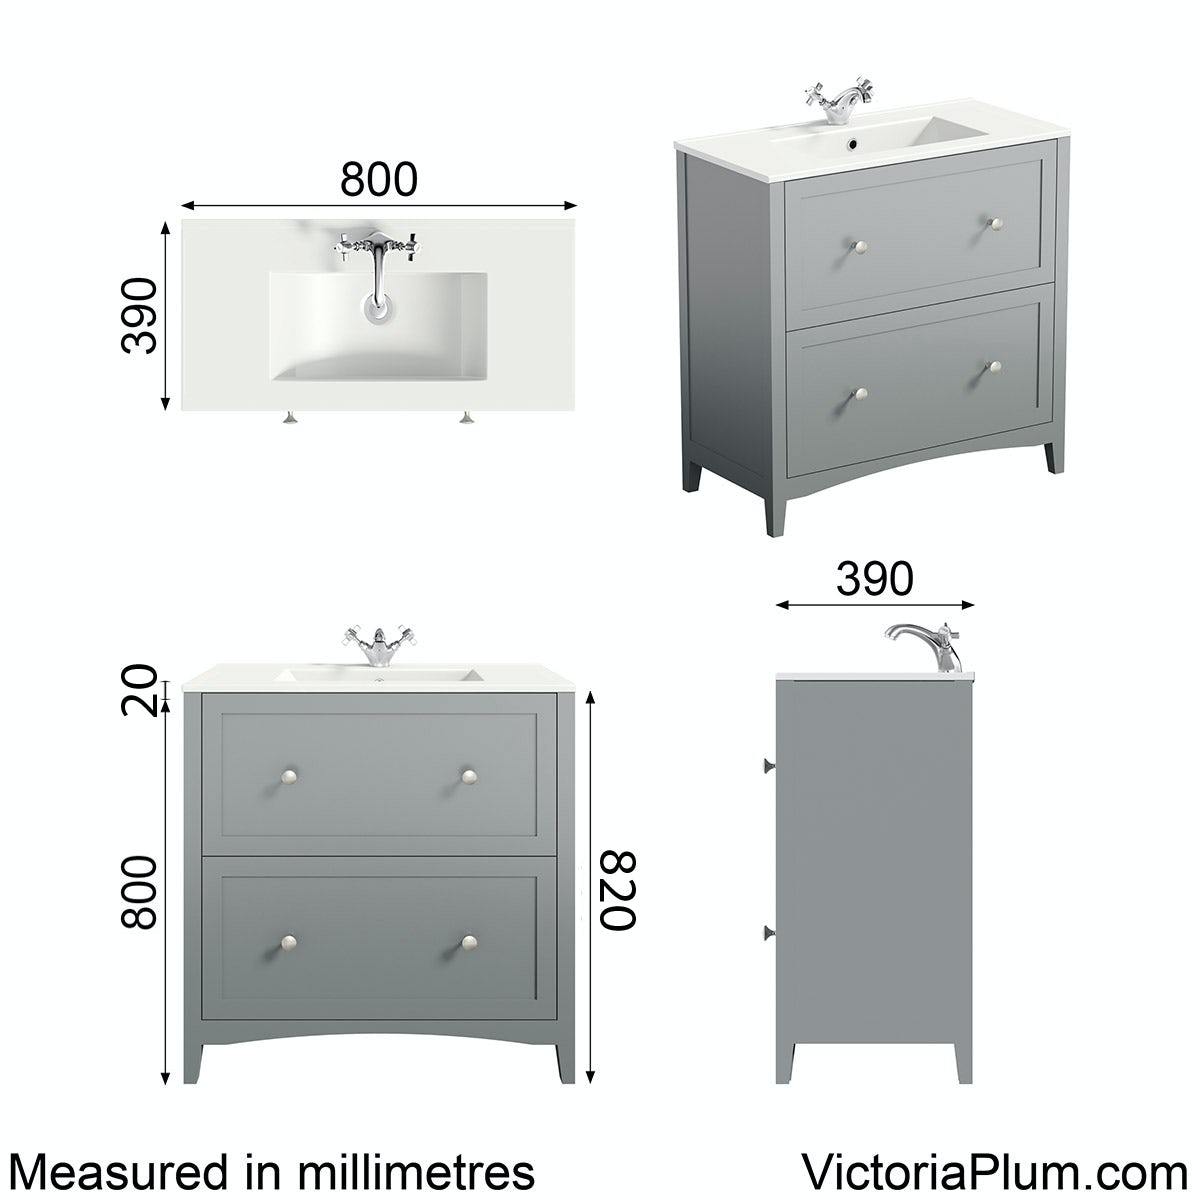 Dimensions for The Bath Co. Camberley satin grey vanity unit with basin 800mm